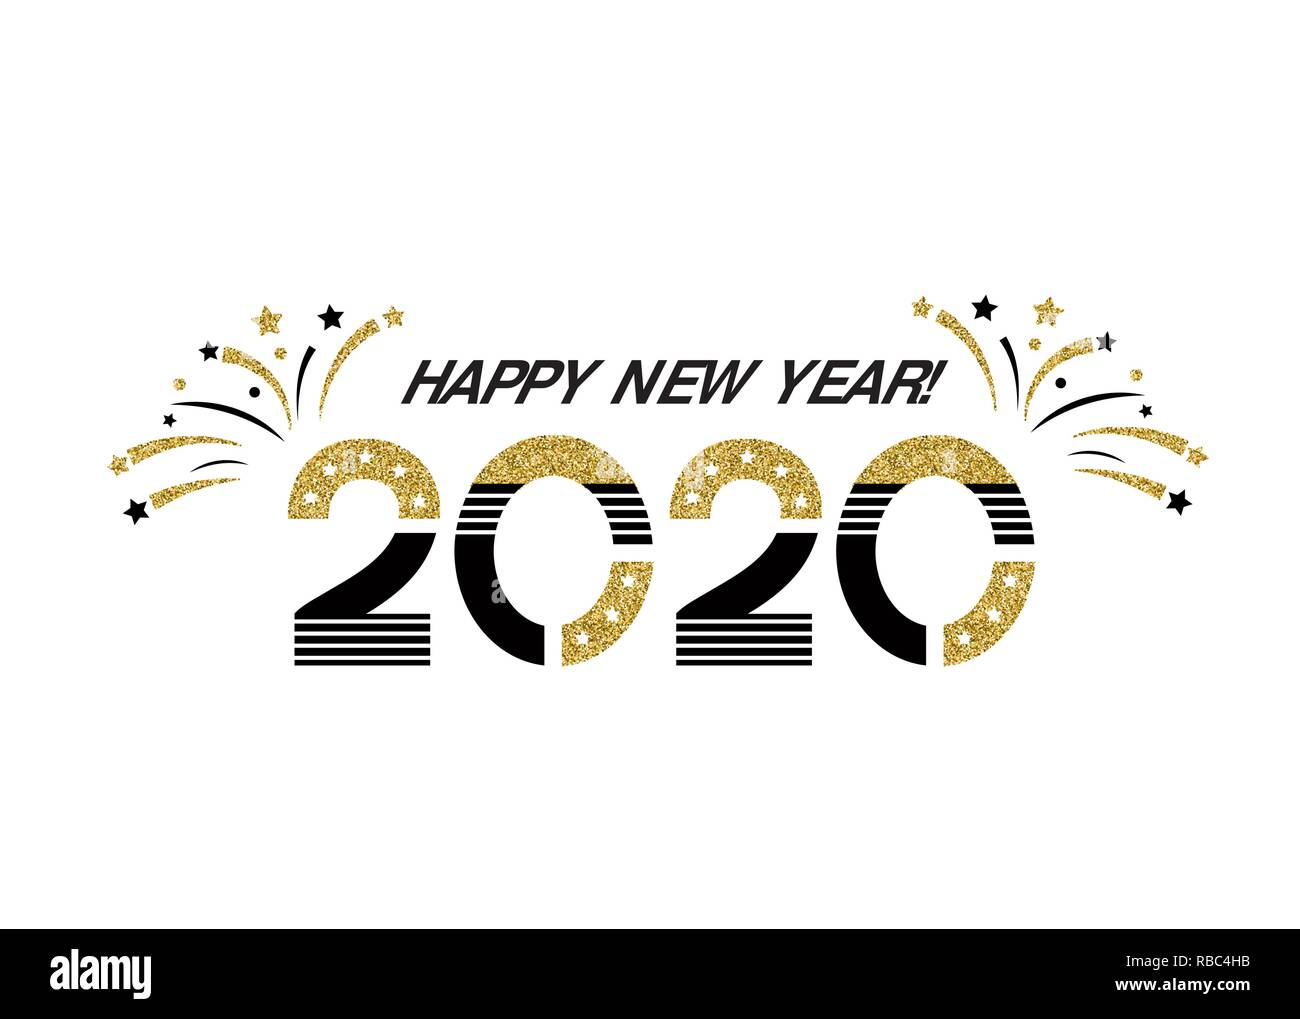 Happy New Year 2020 Glitter Vector 2020 Happy New Year sign with golden glitter texture